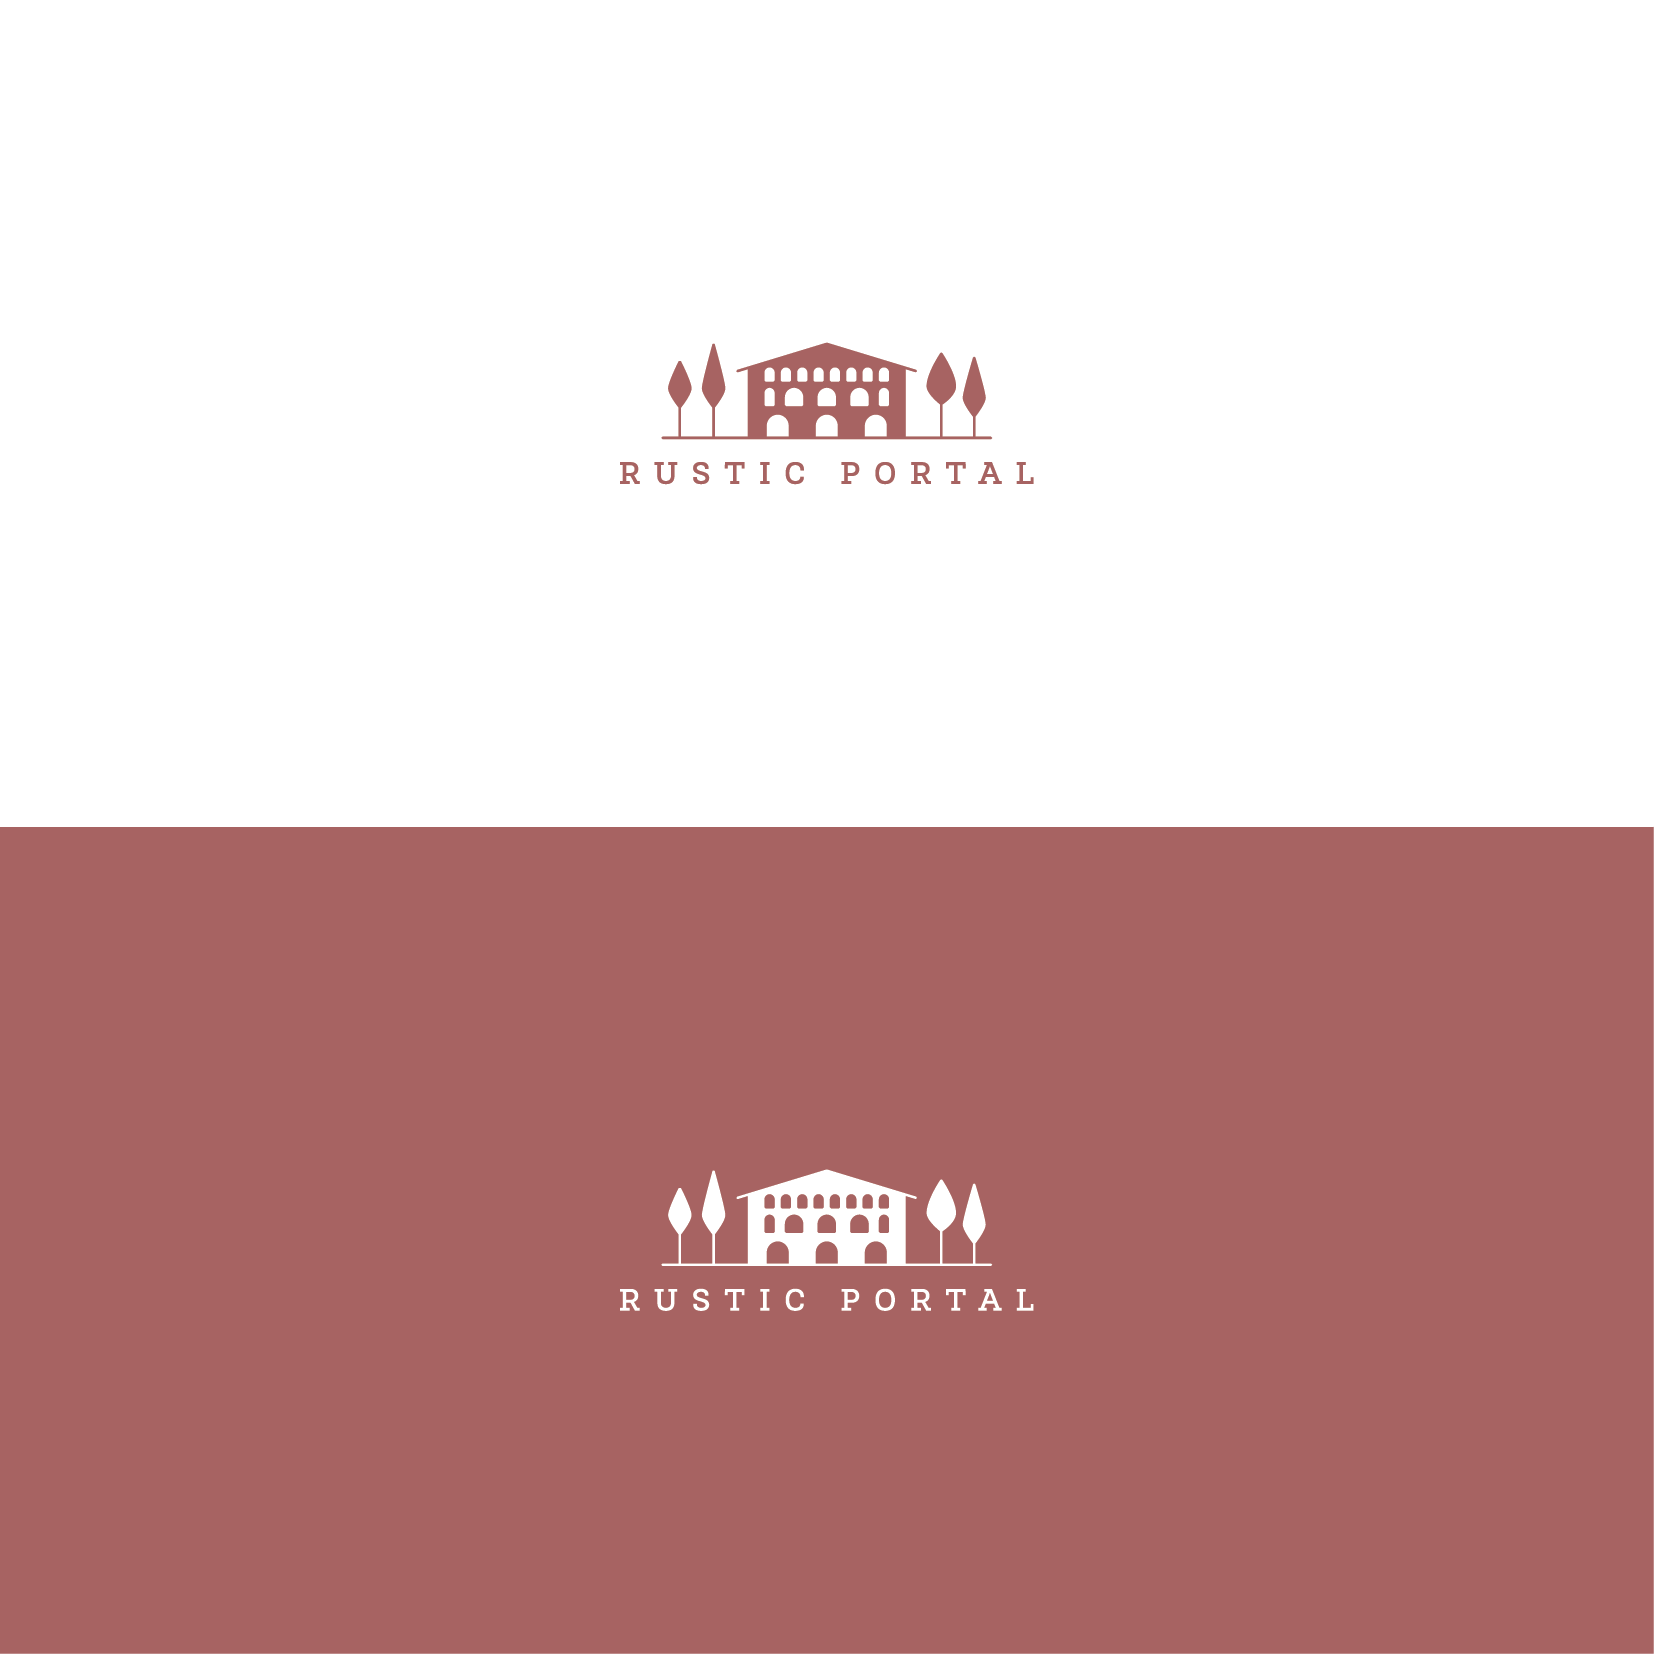 logo to communicate the elegance of tradional countryhouses in spain in a modern manner